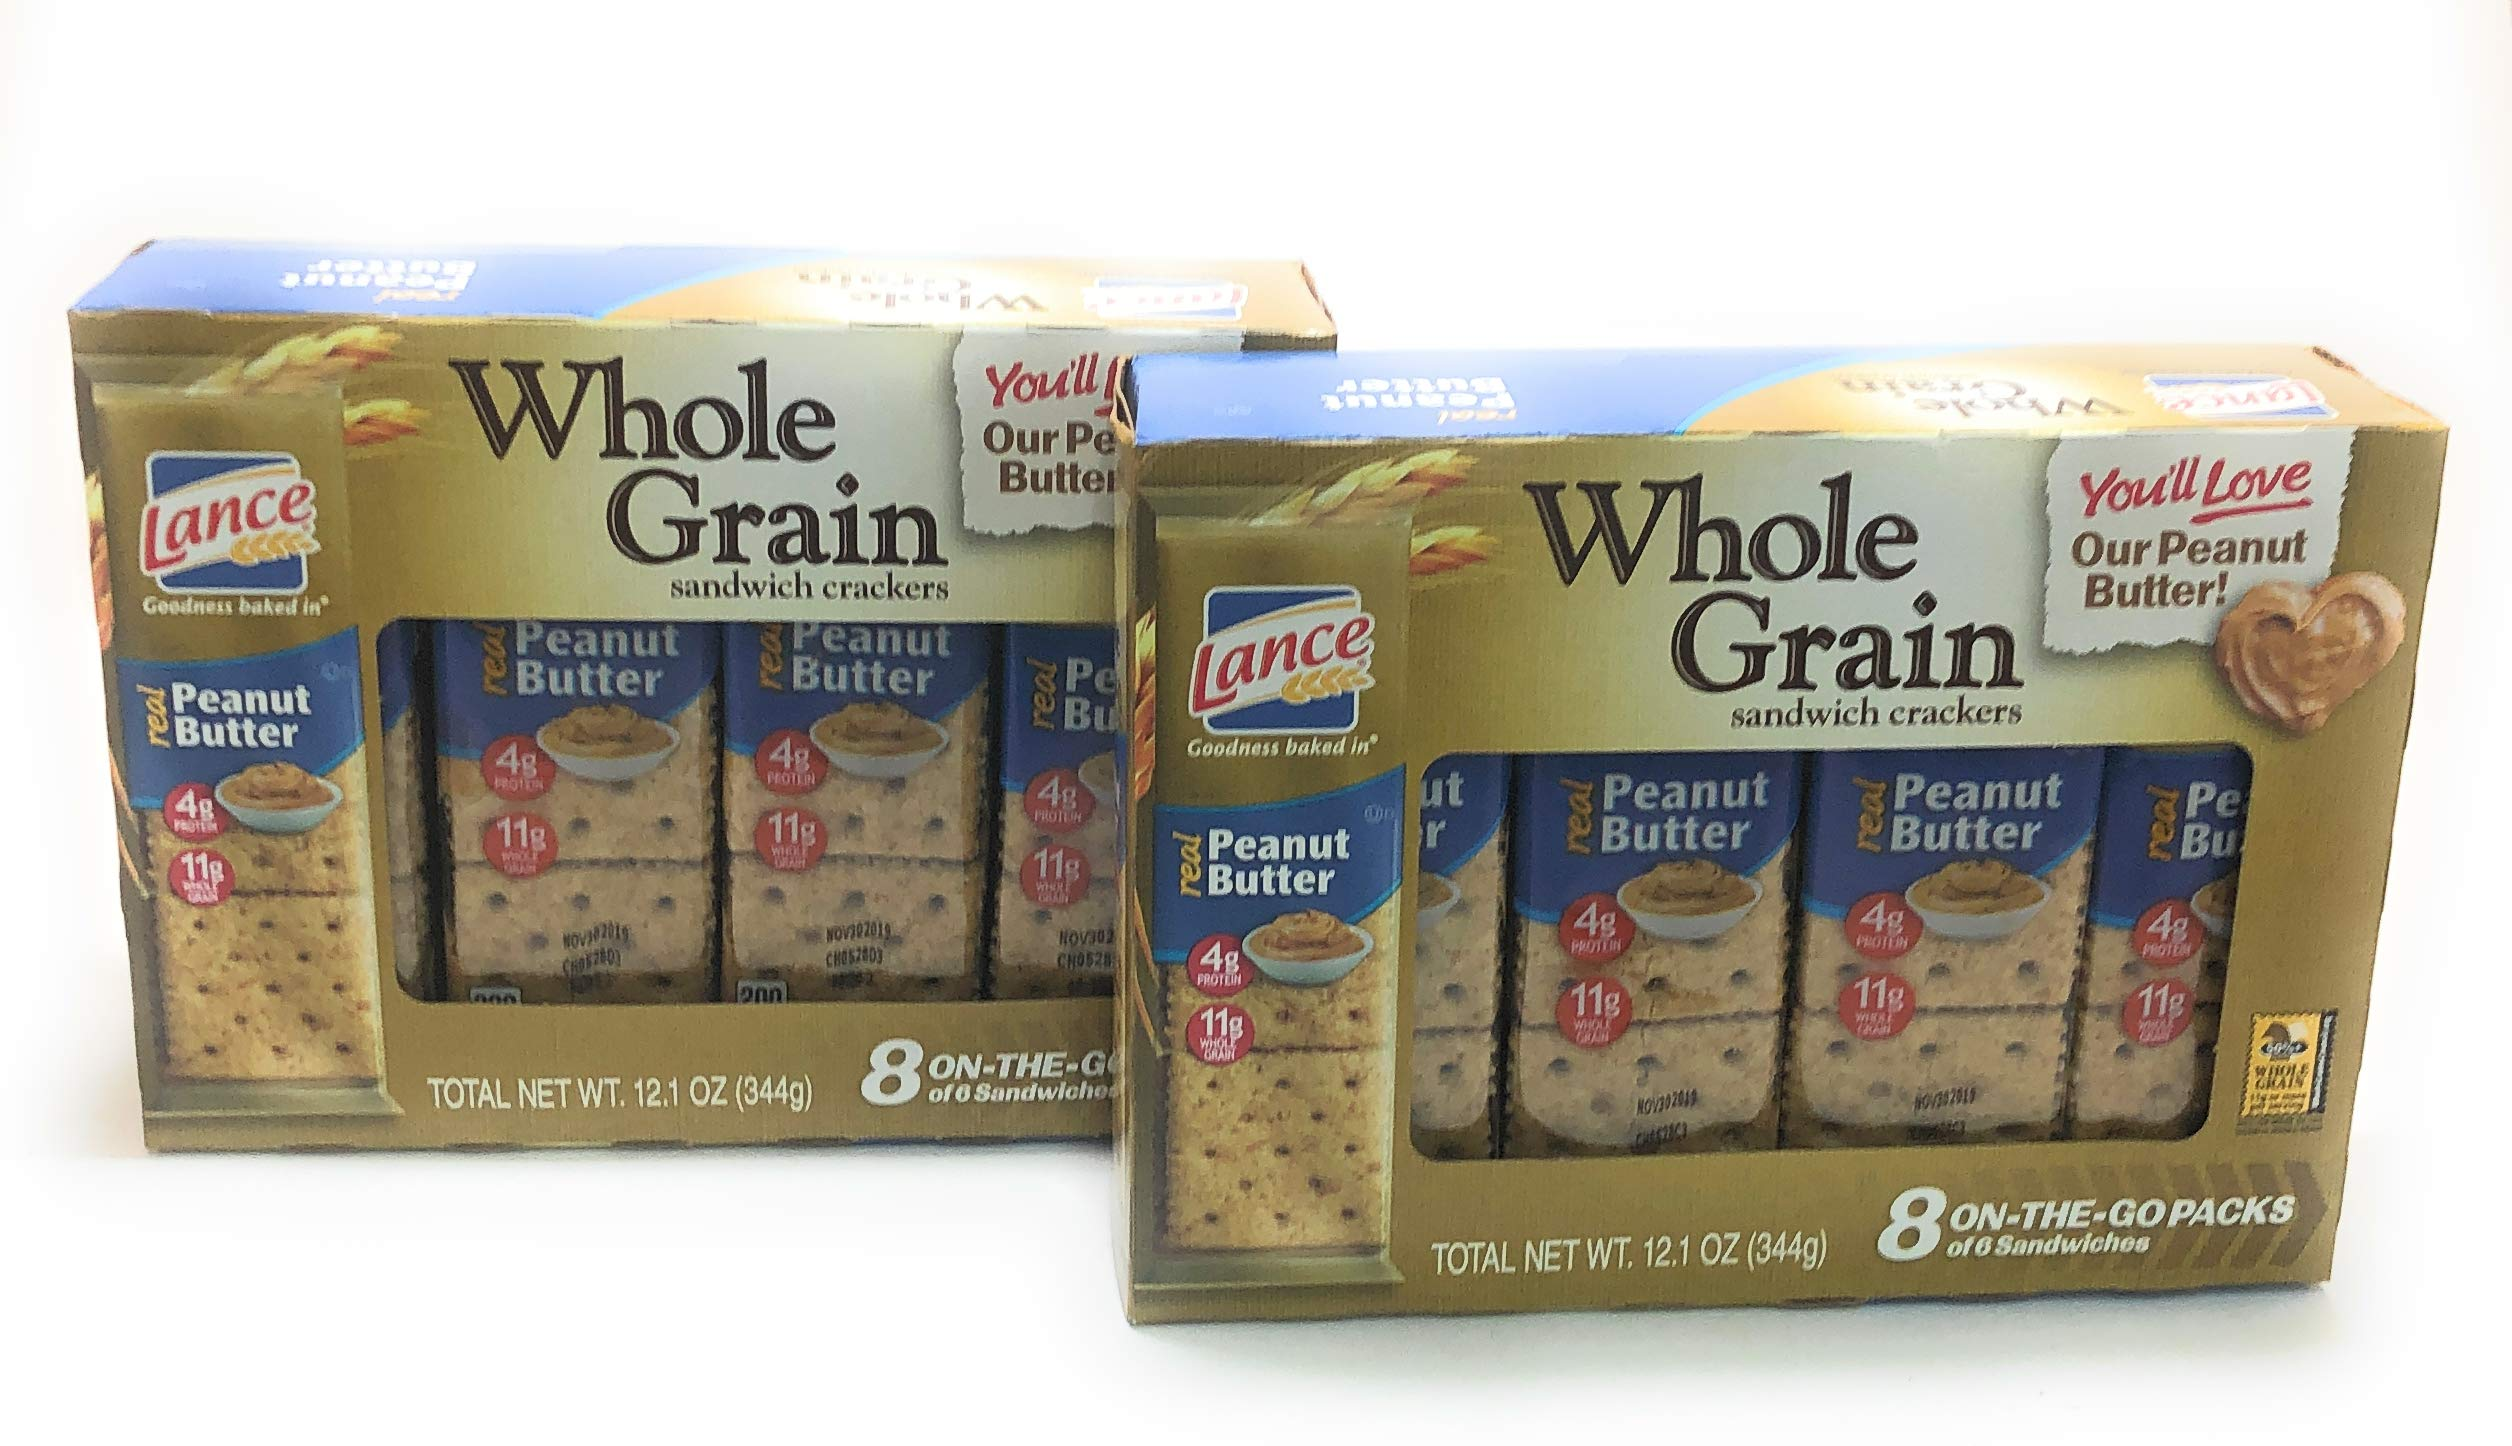 Lance Whole Grain Peanut Butter Sandwich Crackers 12.1 oz, Pack of 2 by Lance Crackers